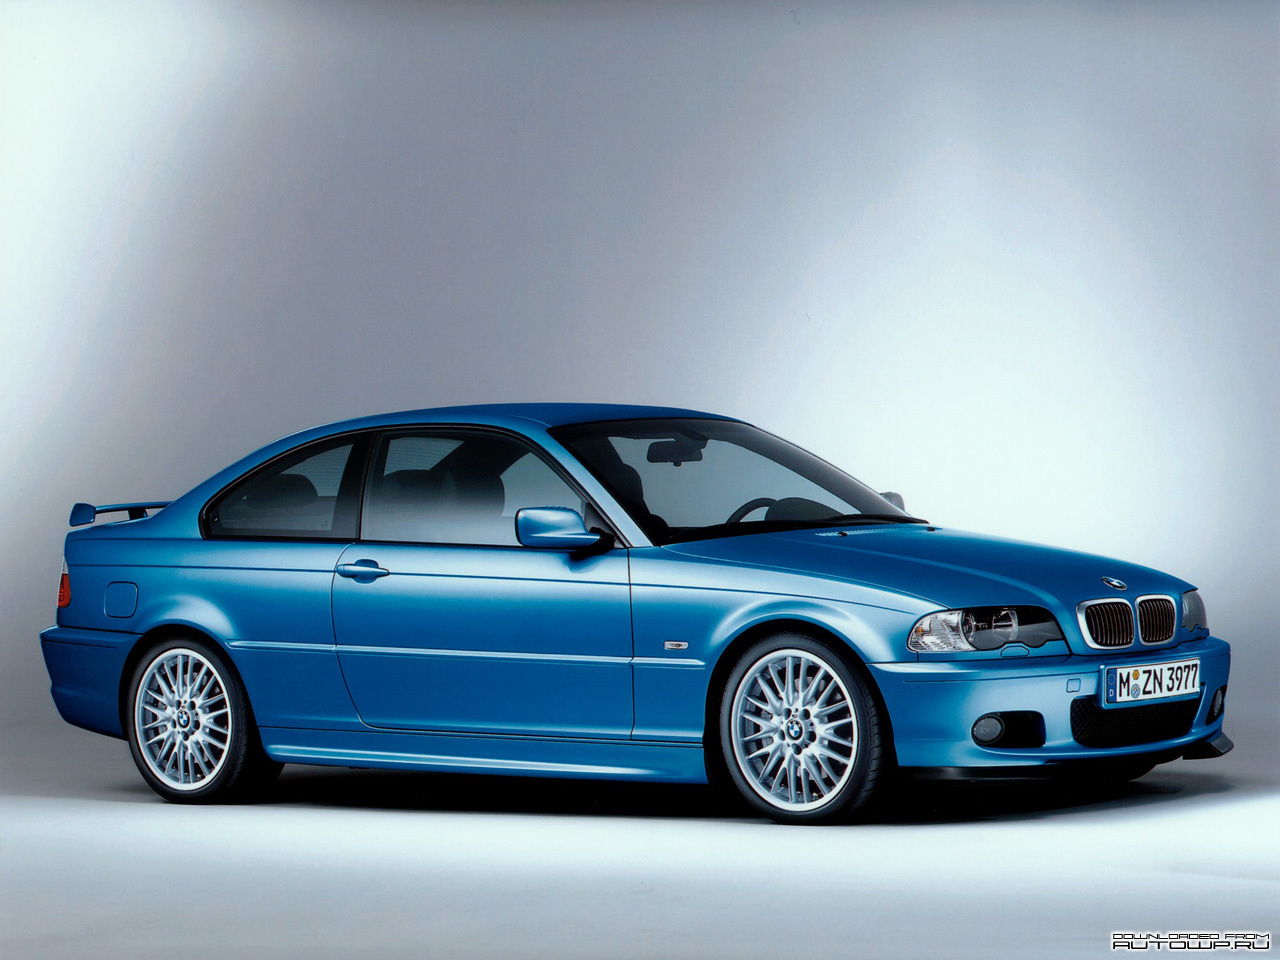 bmw 3 series e46 coupe photos photogallery with 53 pics. Black Bedroom Furniture Sets. Home Design Ideas